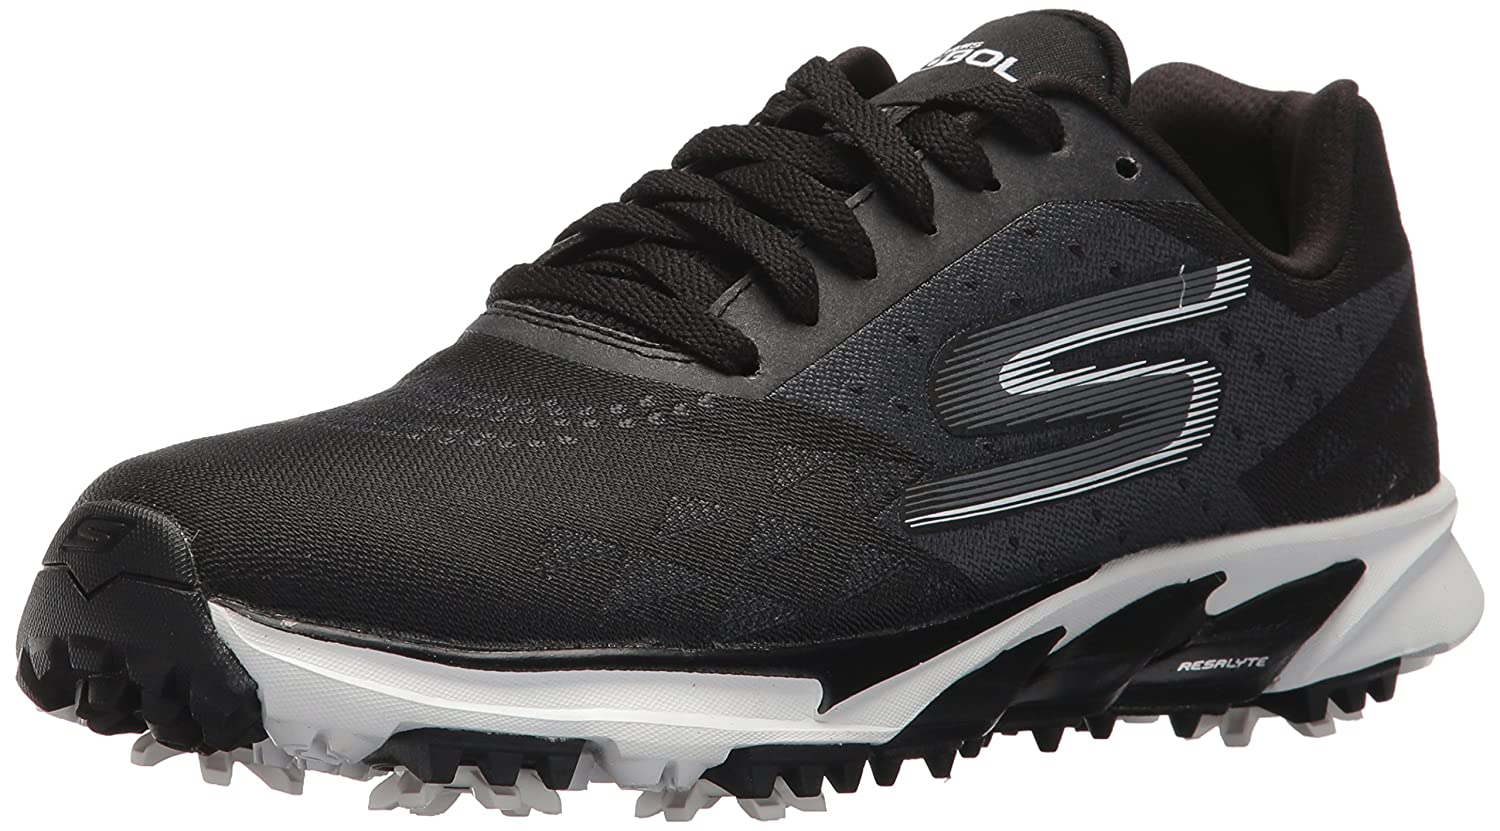 Skechers Women's Go Golf Blade 2 Walking Shoe B06XWHCJMY 6.5 M US|Black/White